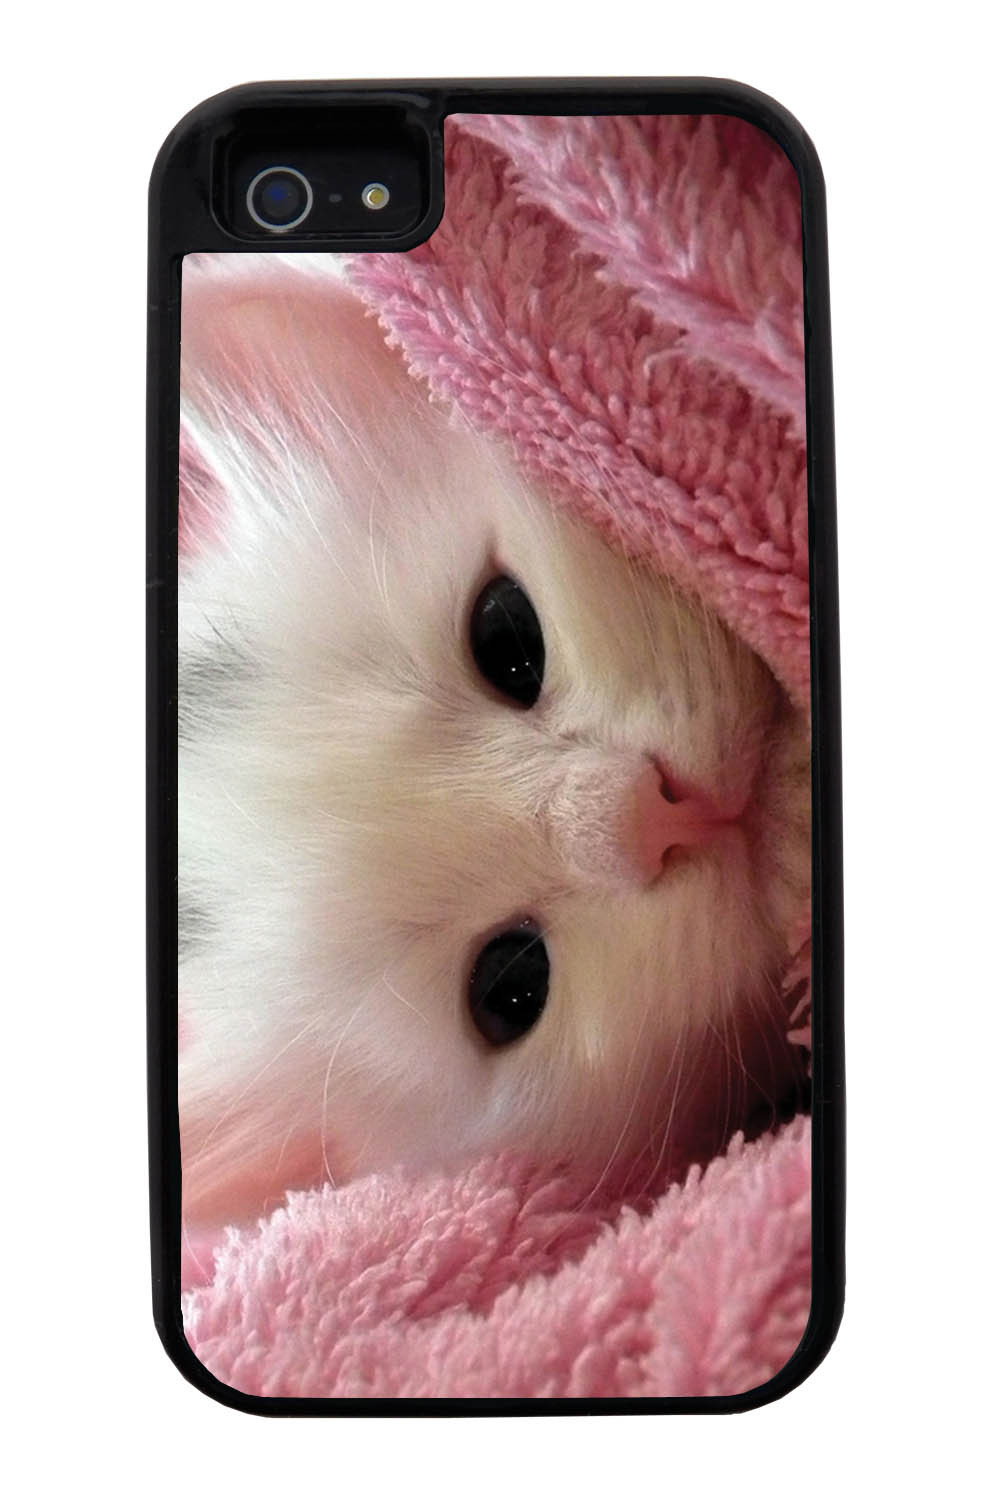 Apple iPhone 5 / 5S Cat Case - New Born Kitten Photo - Cute Pictures - Black Tough Hybrid Case